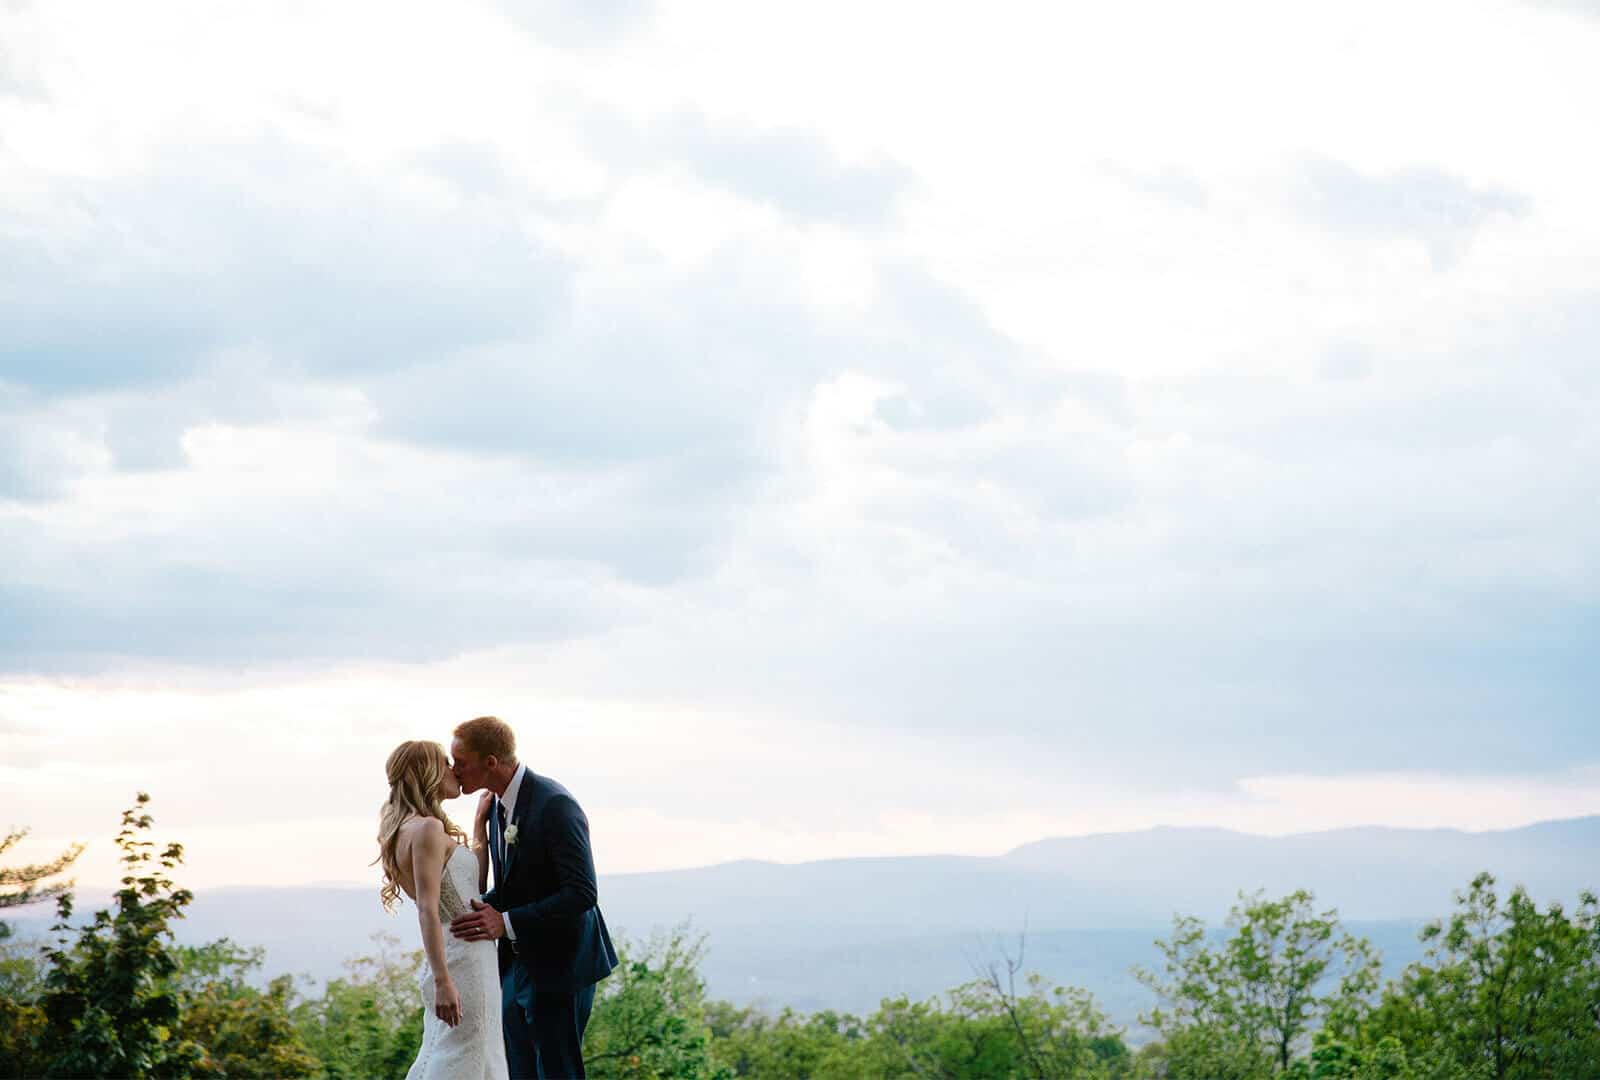 Hudson Valley wedding photoshoot